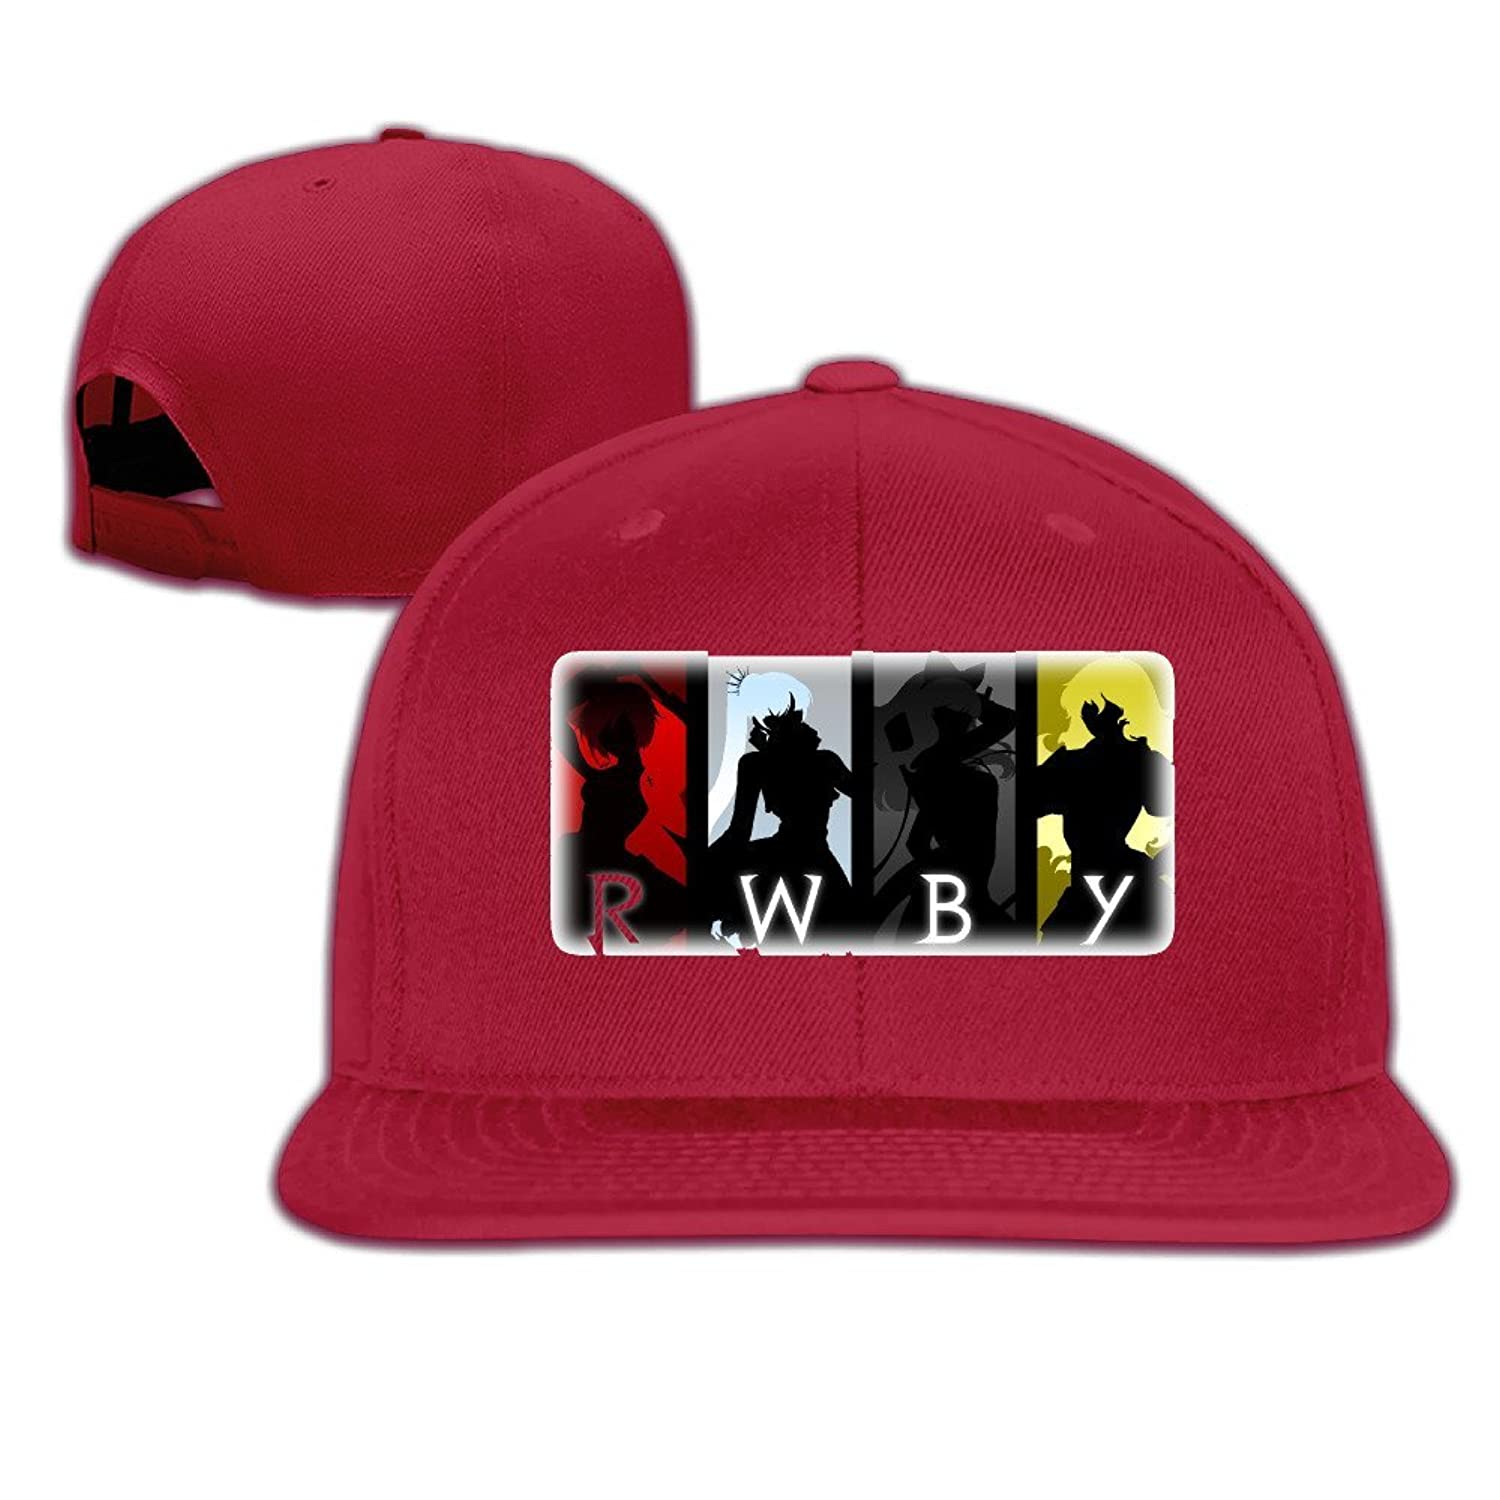 BUUMY RWBY Boy's Latest Style Fitted Hats